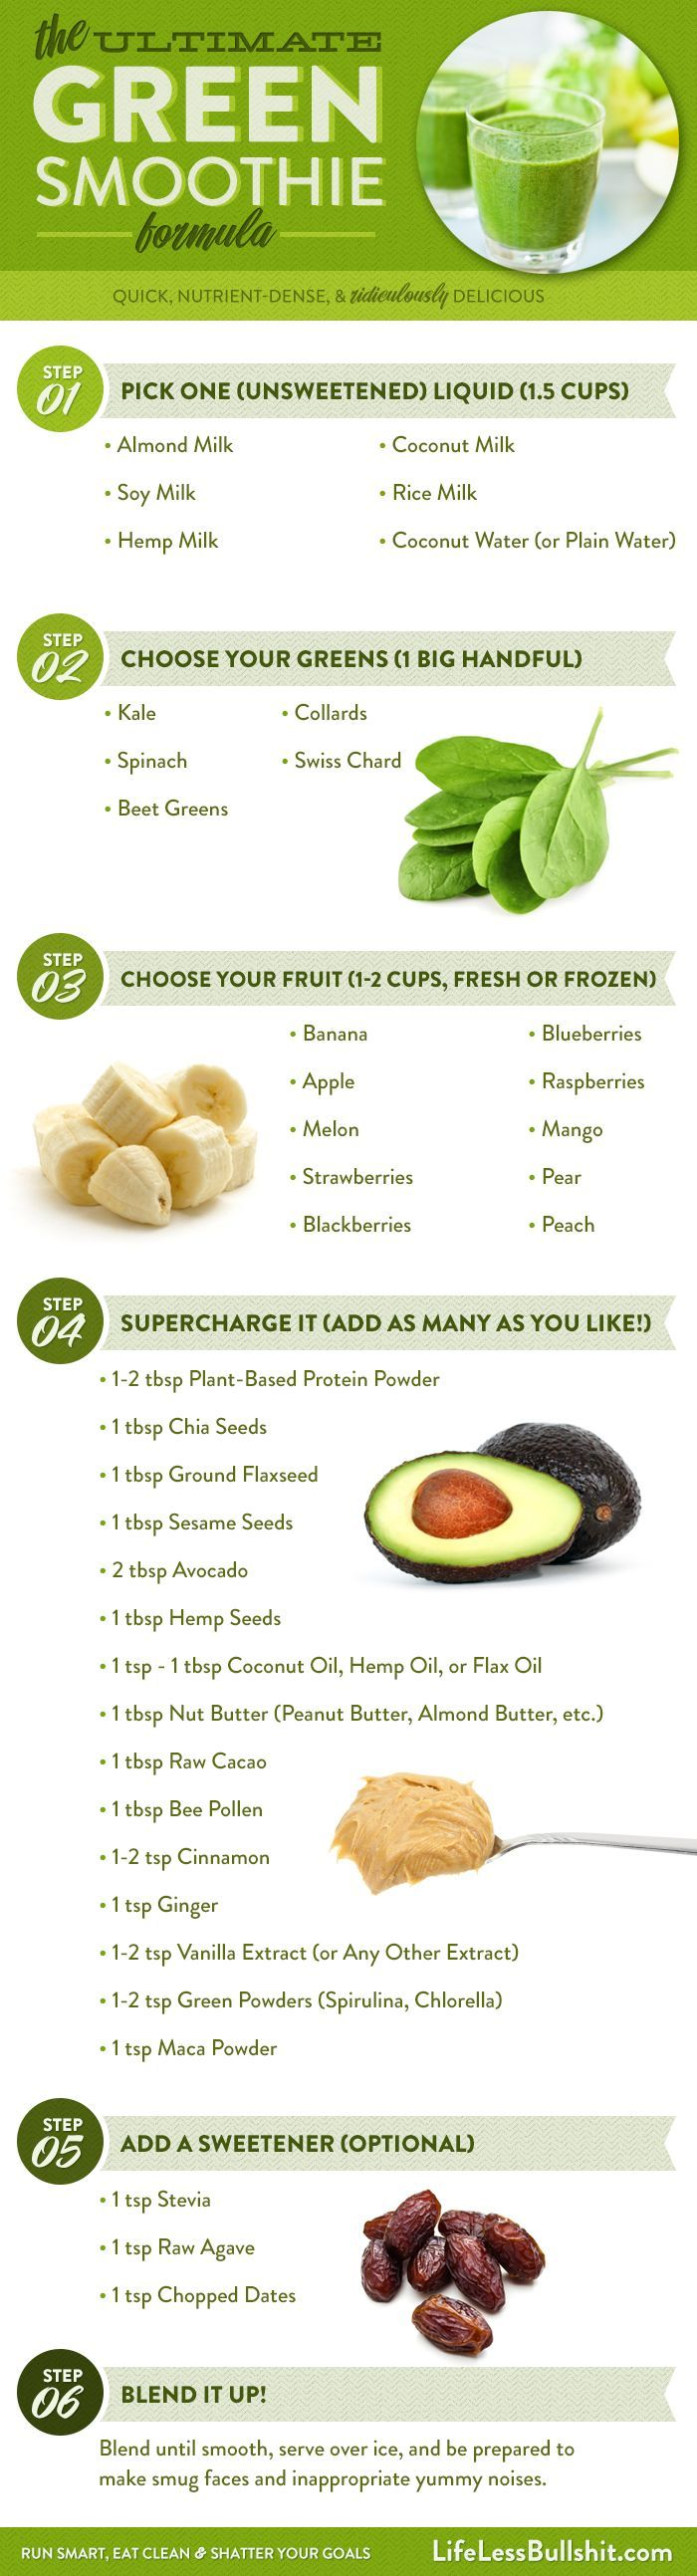 Green Smoothie Side Effects and Green Smoothie Health